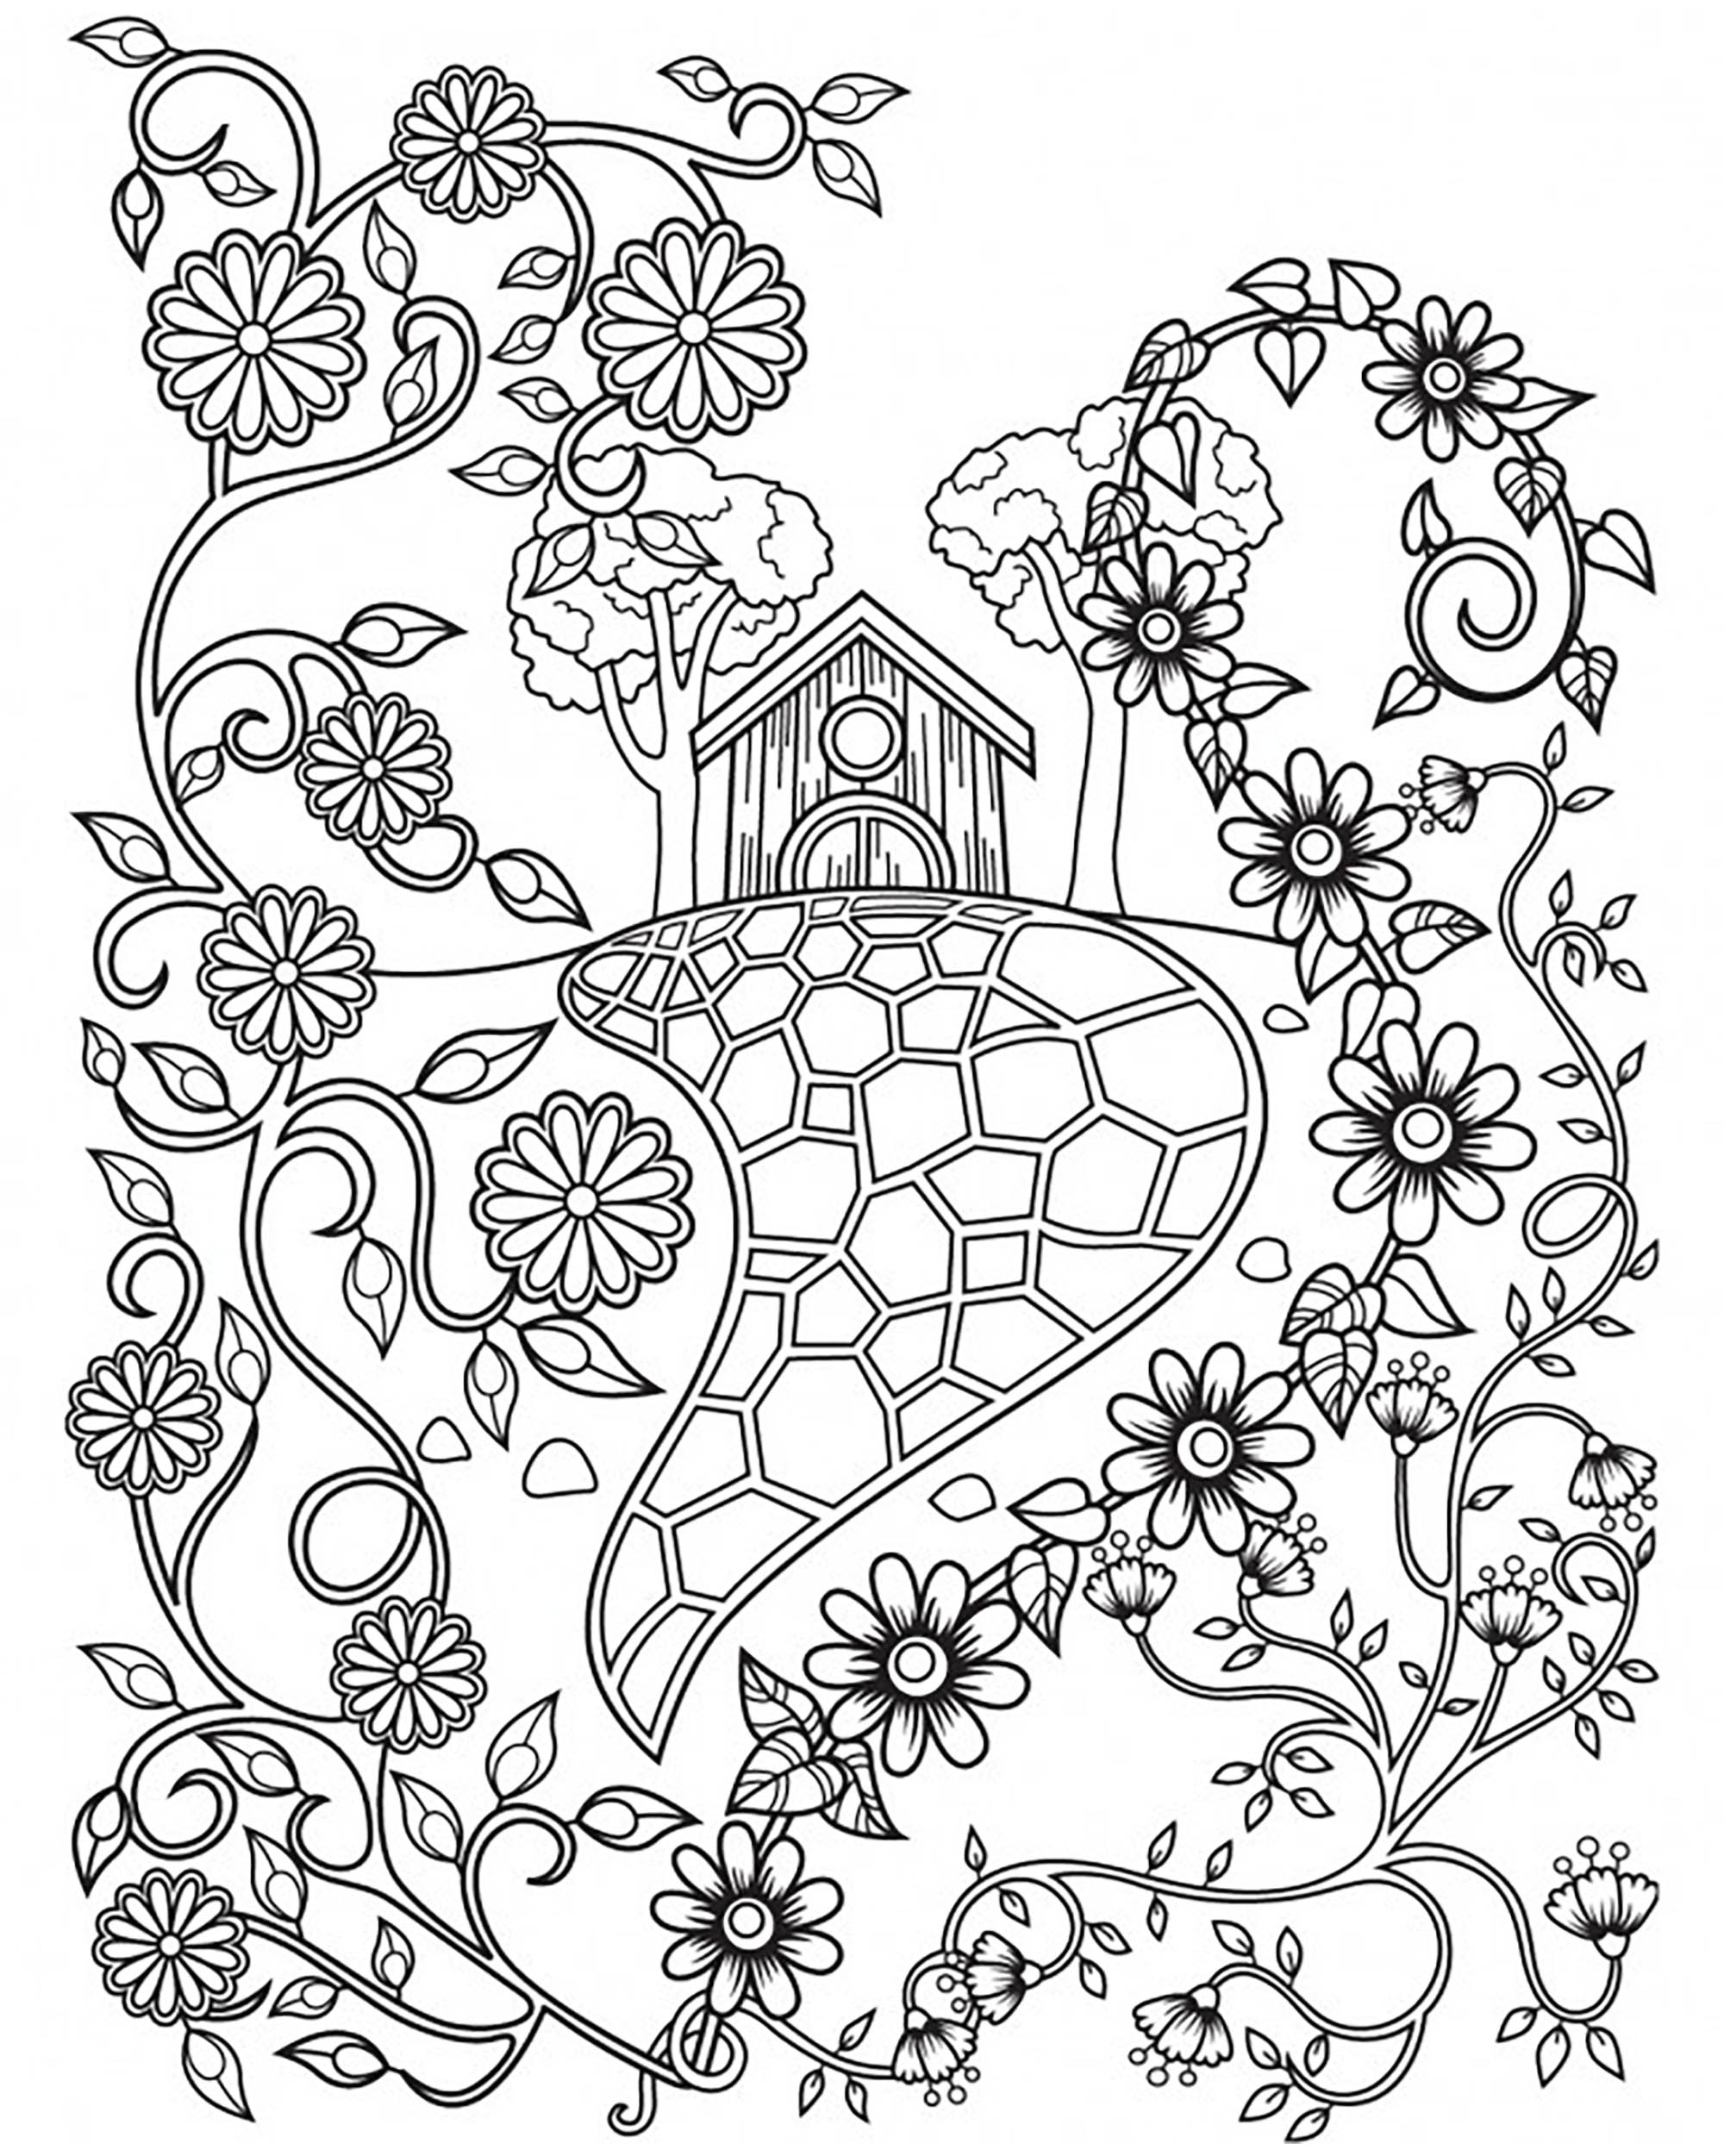 Fairy tale house and flowers | Fairy tales - Coloring pages for ...